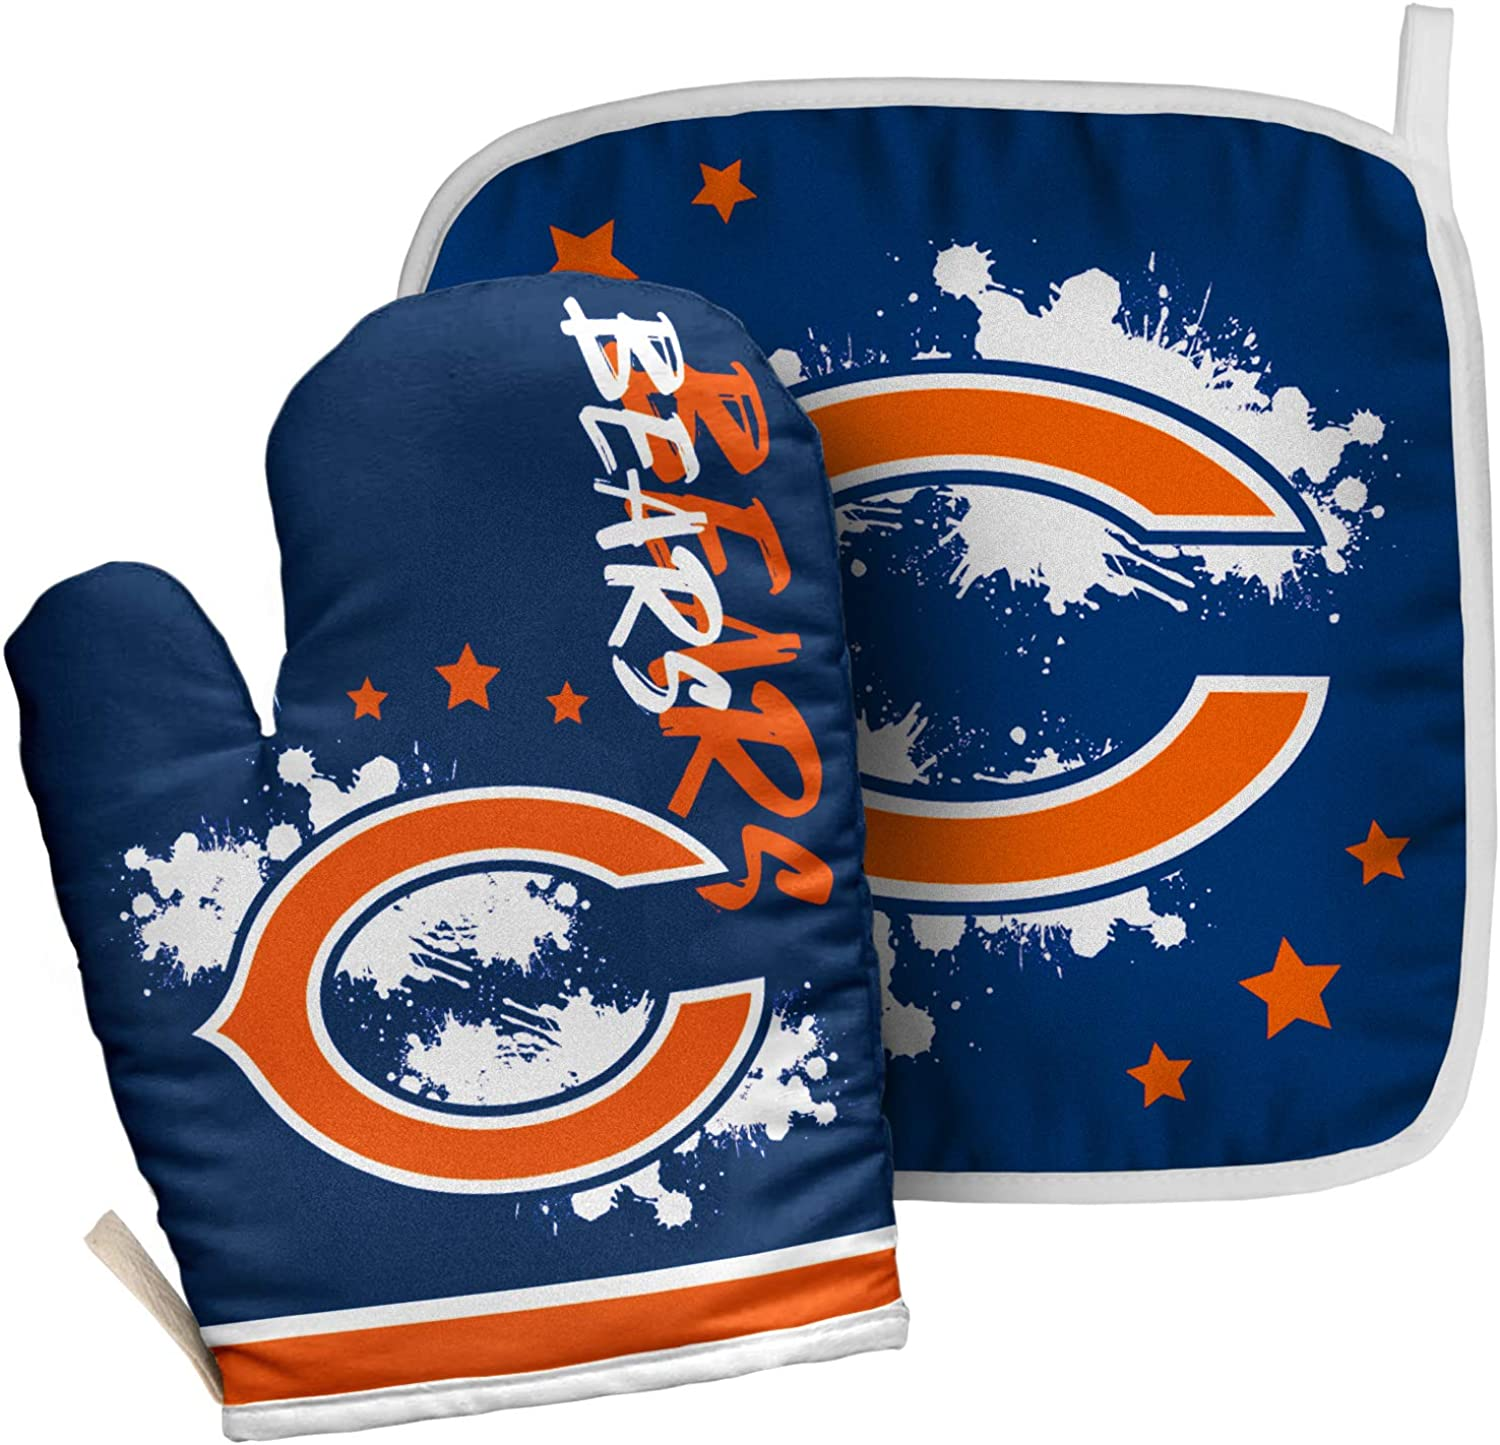 ZEWLLY Football Team Logo Oven Mitt and Pot Holder Set Heat Resistant Gloves for Cooking Grilling Baking